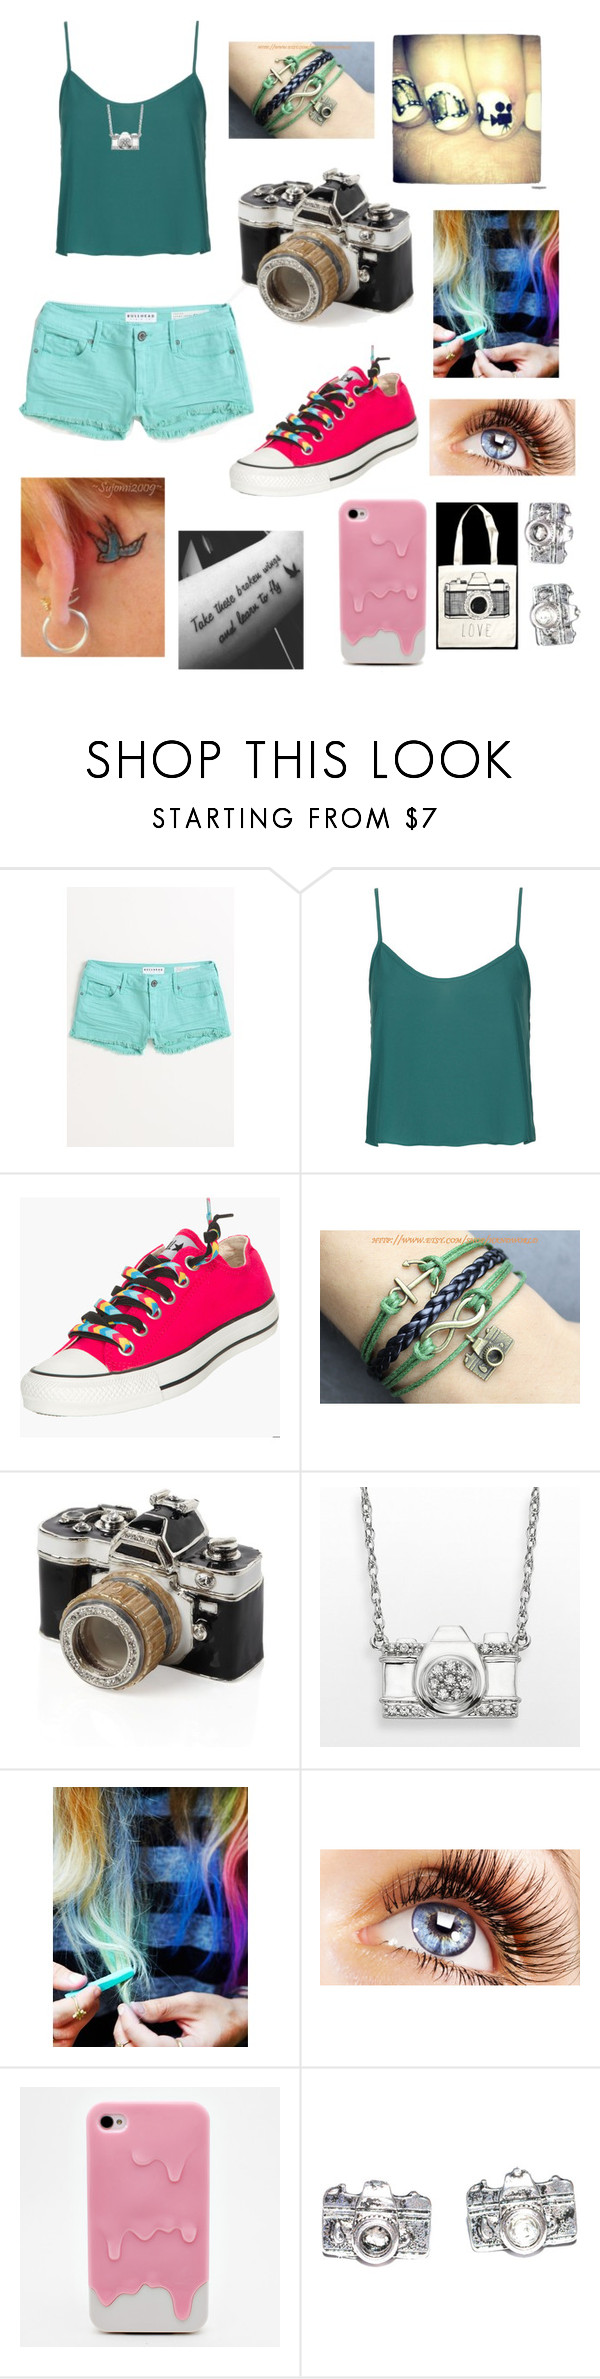 """""""photography"""" by talkturnsintoair ❤ liked on Polyvore featuring Bullhead Denim Co., Topshop, Converse, Zooey, Free People, Case-Mate, women's clothing, women's fashion, women and female"""